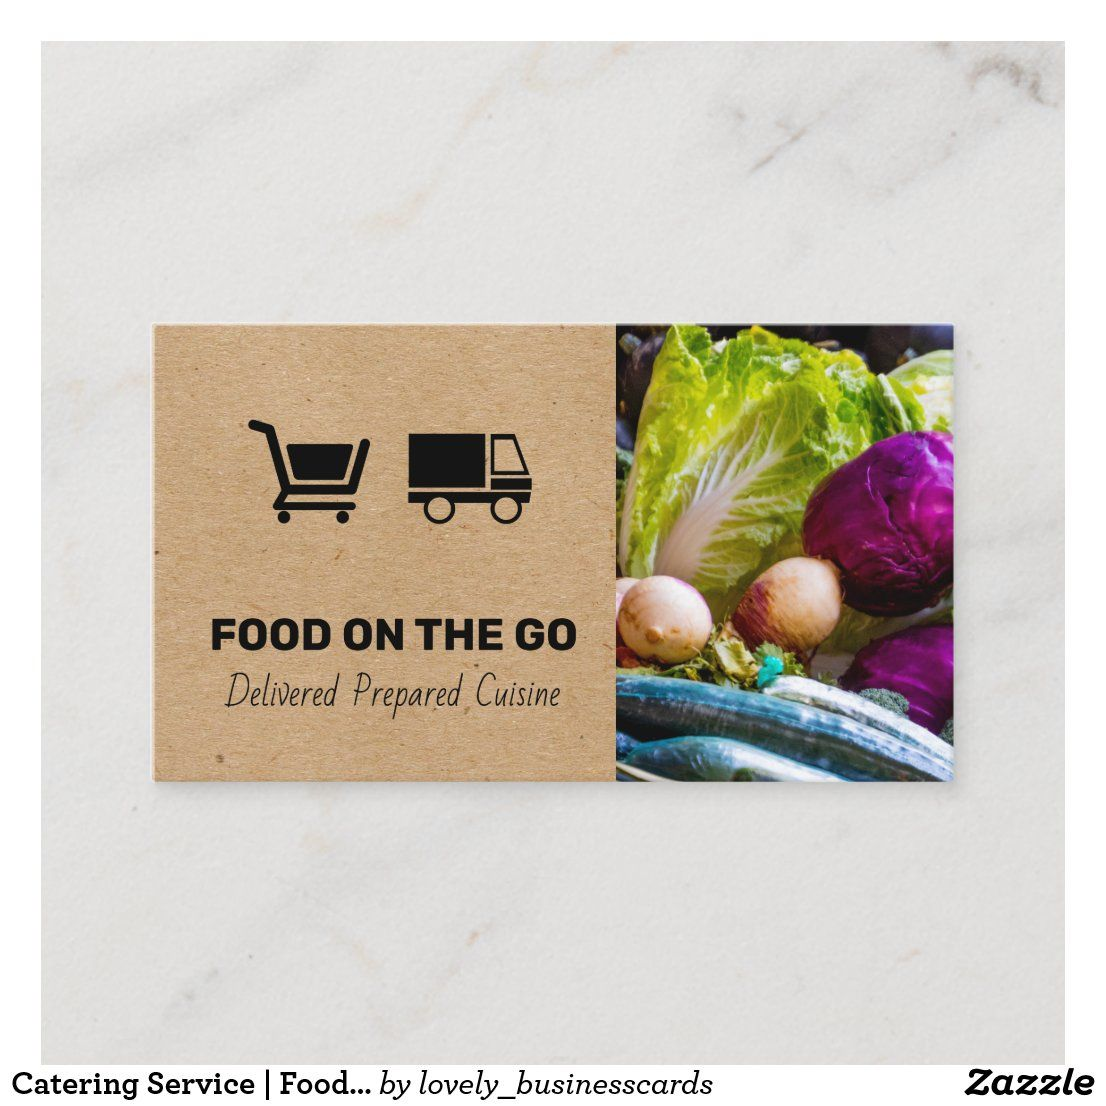 Catering Service Food Delivery Chef Business Card Zazzle Com In 2021 Catering Services Party Food Catering Food Delivery